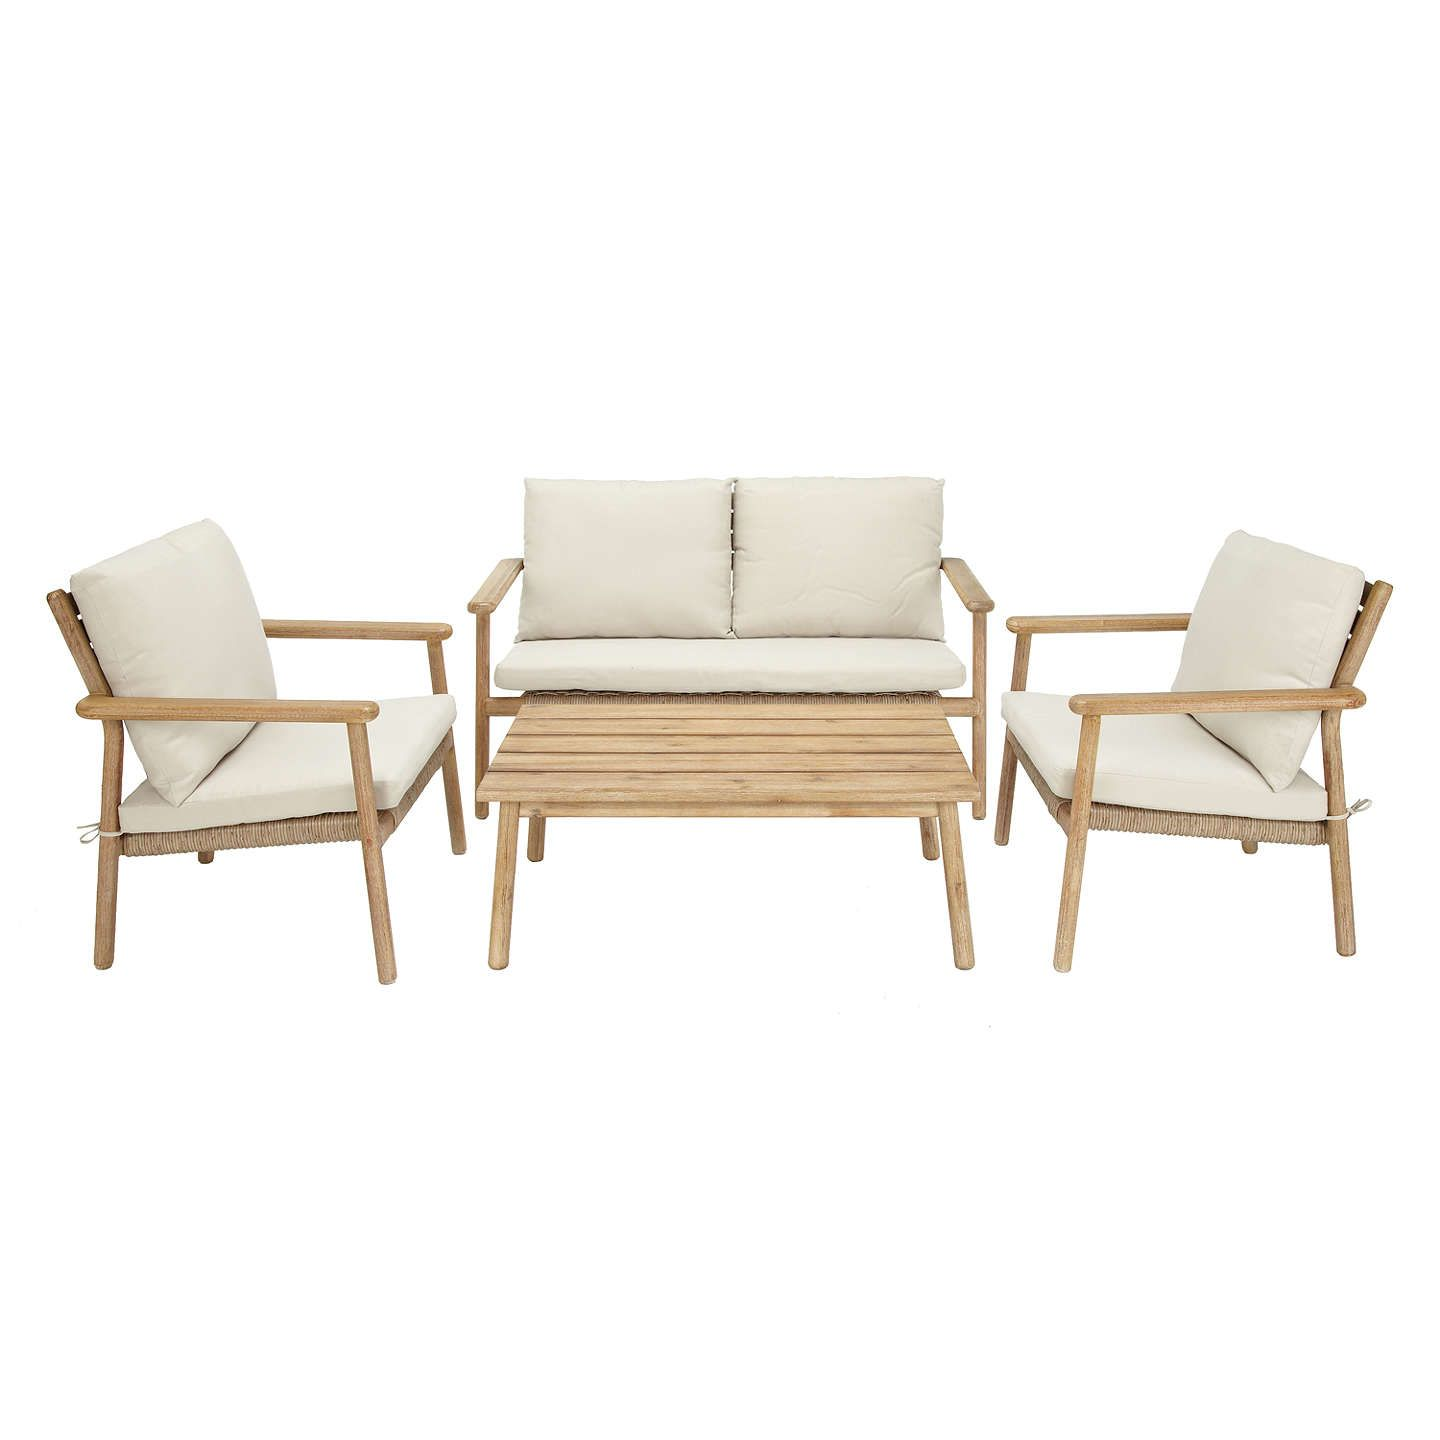 Oasis 4 Seater Garden Lounging Table And Chairs Set: Croft Collection Islay 4 Seater Garden Lounging Set